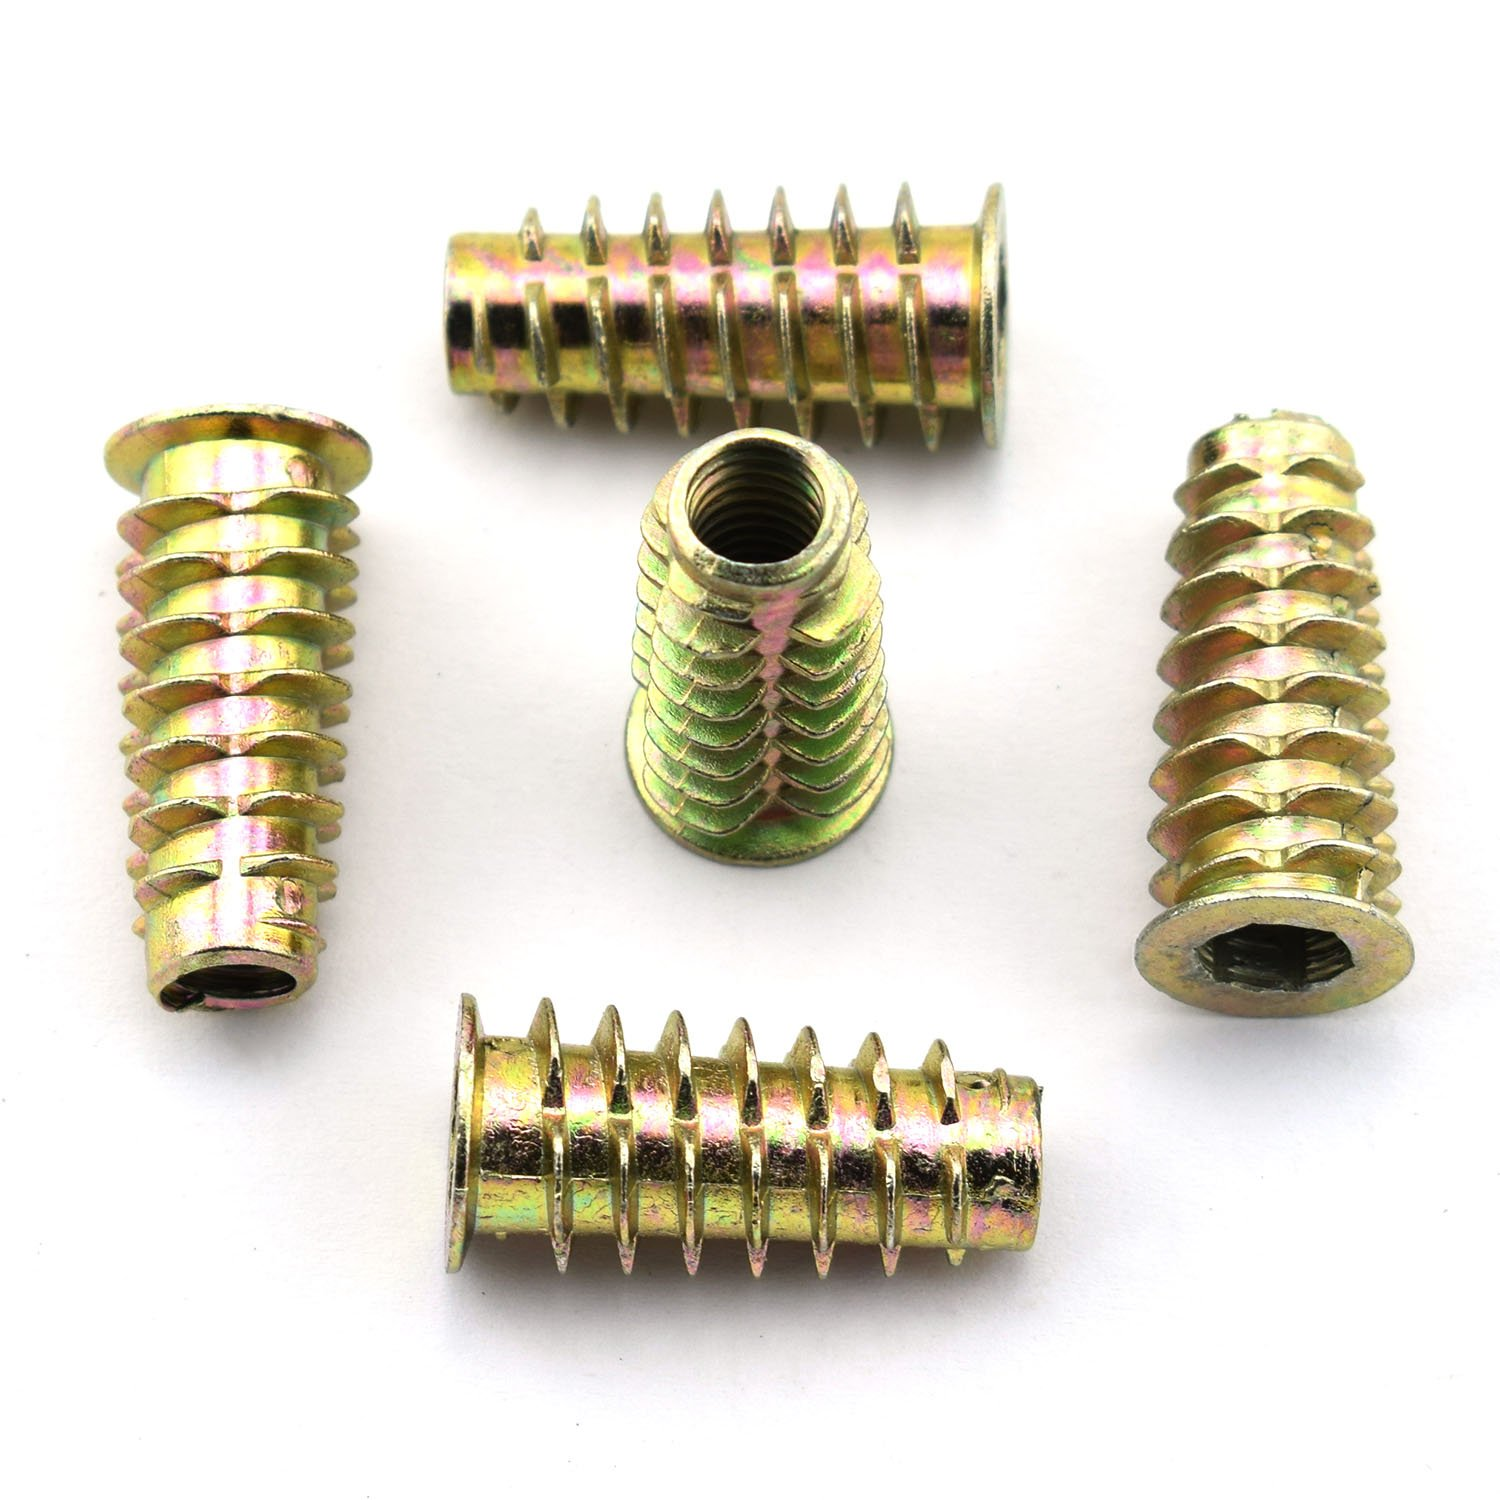 LQ Industrial 30pcs 25mm Furniture Screw-in Nut Zinc Alloy Bolt Fastener Connector Hex Socket Drive Threaded Insert Nuts For Wood Furniture Assortment 1/4''-20 by LQ Industrial